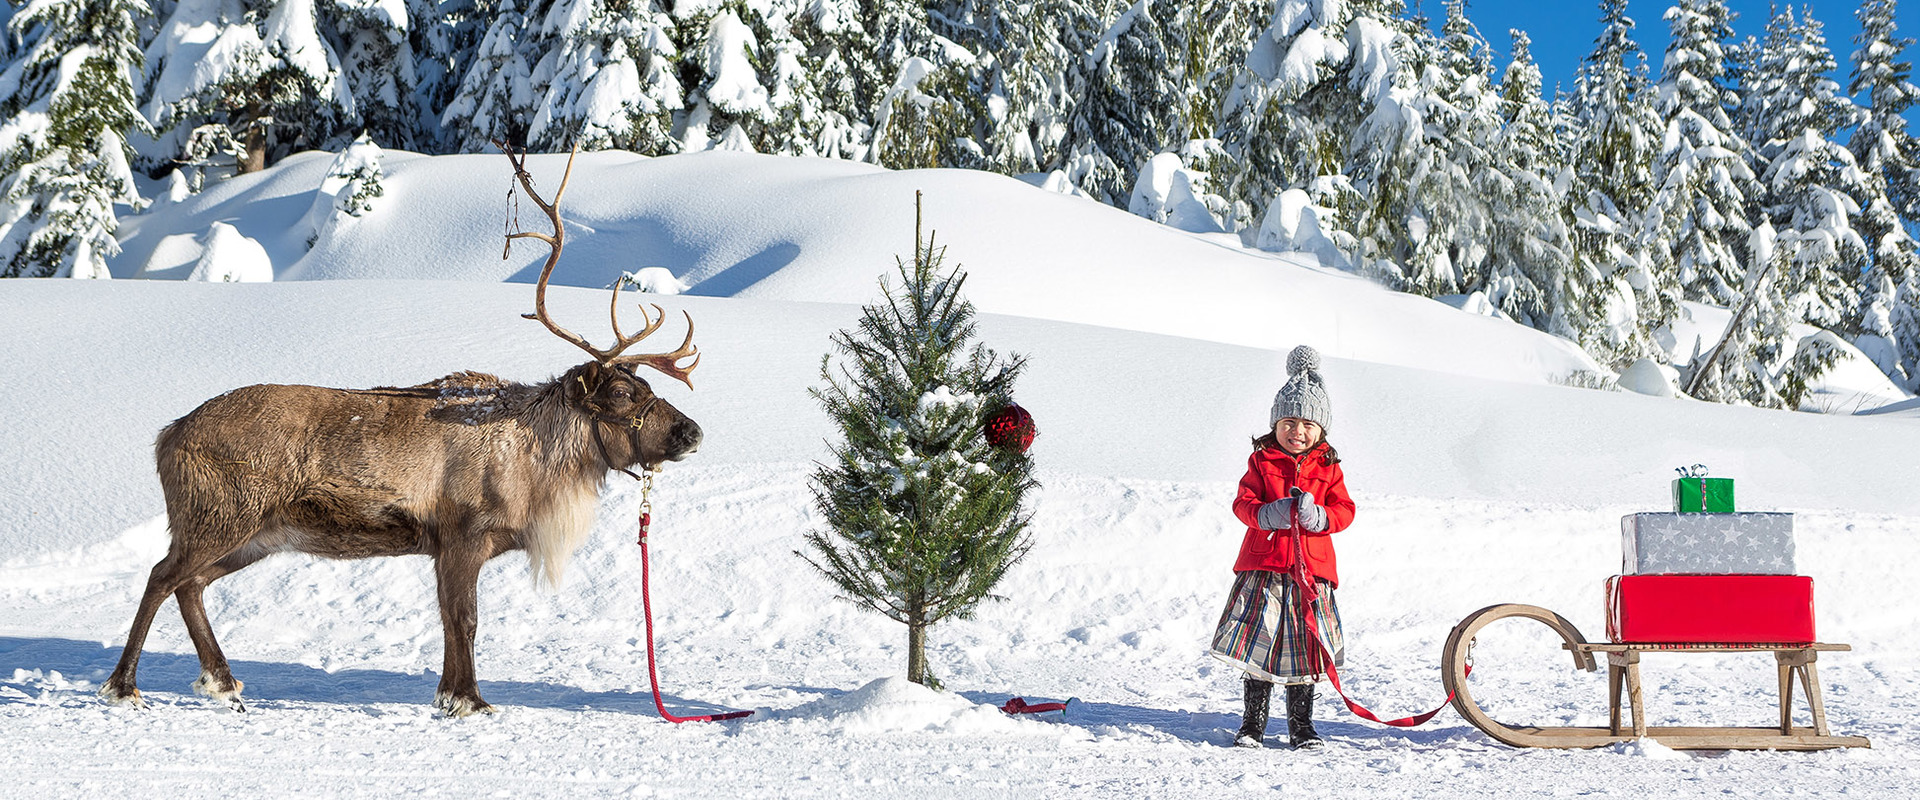 d852dc9ebcd0 Top Christmas Events for Kids in Vancouver